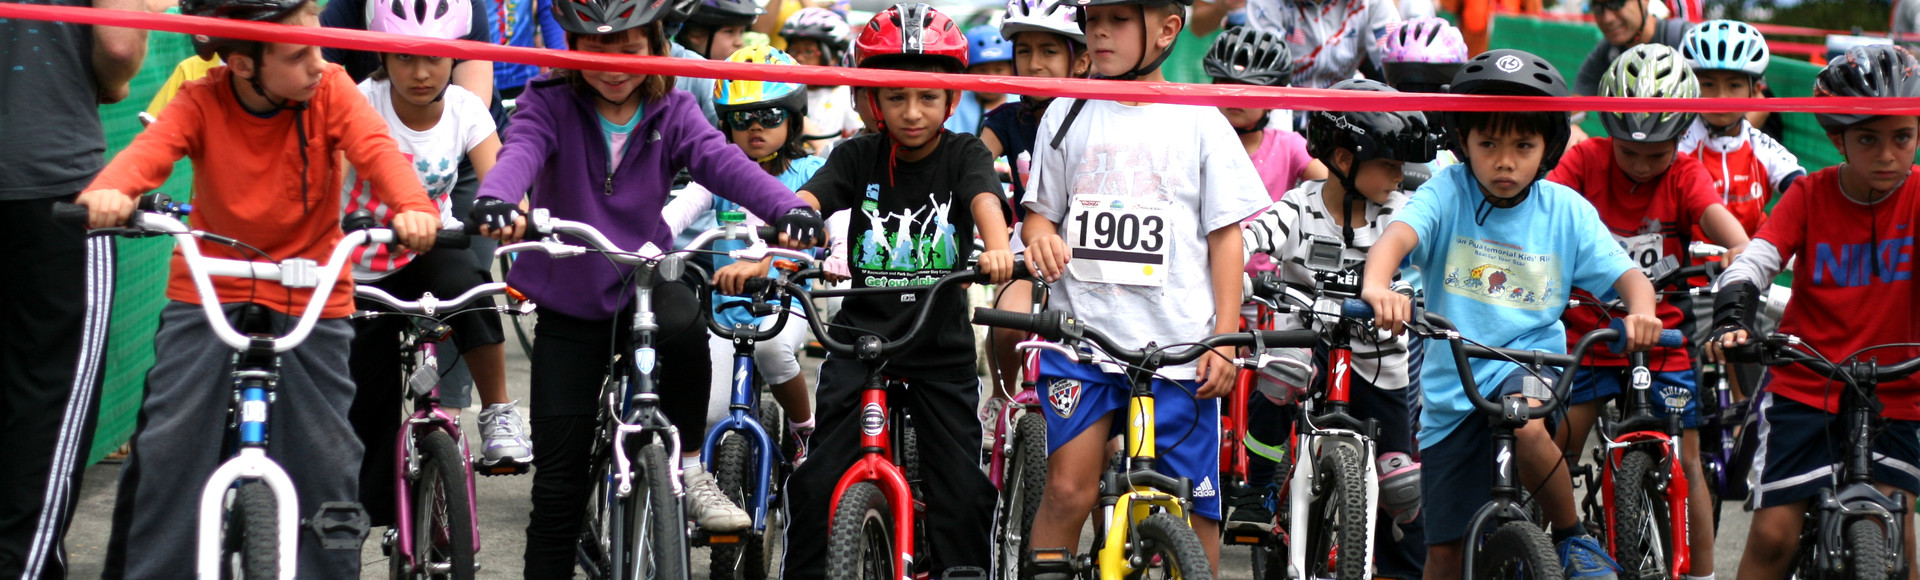 Children Cycle Race at Wachauer RADtage